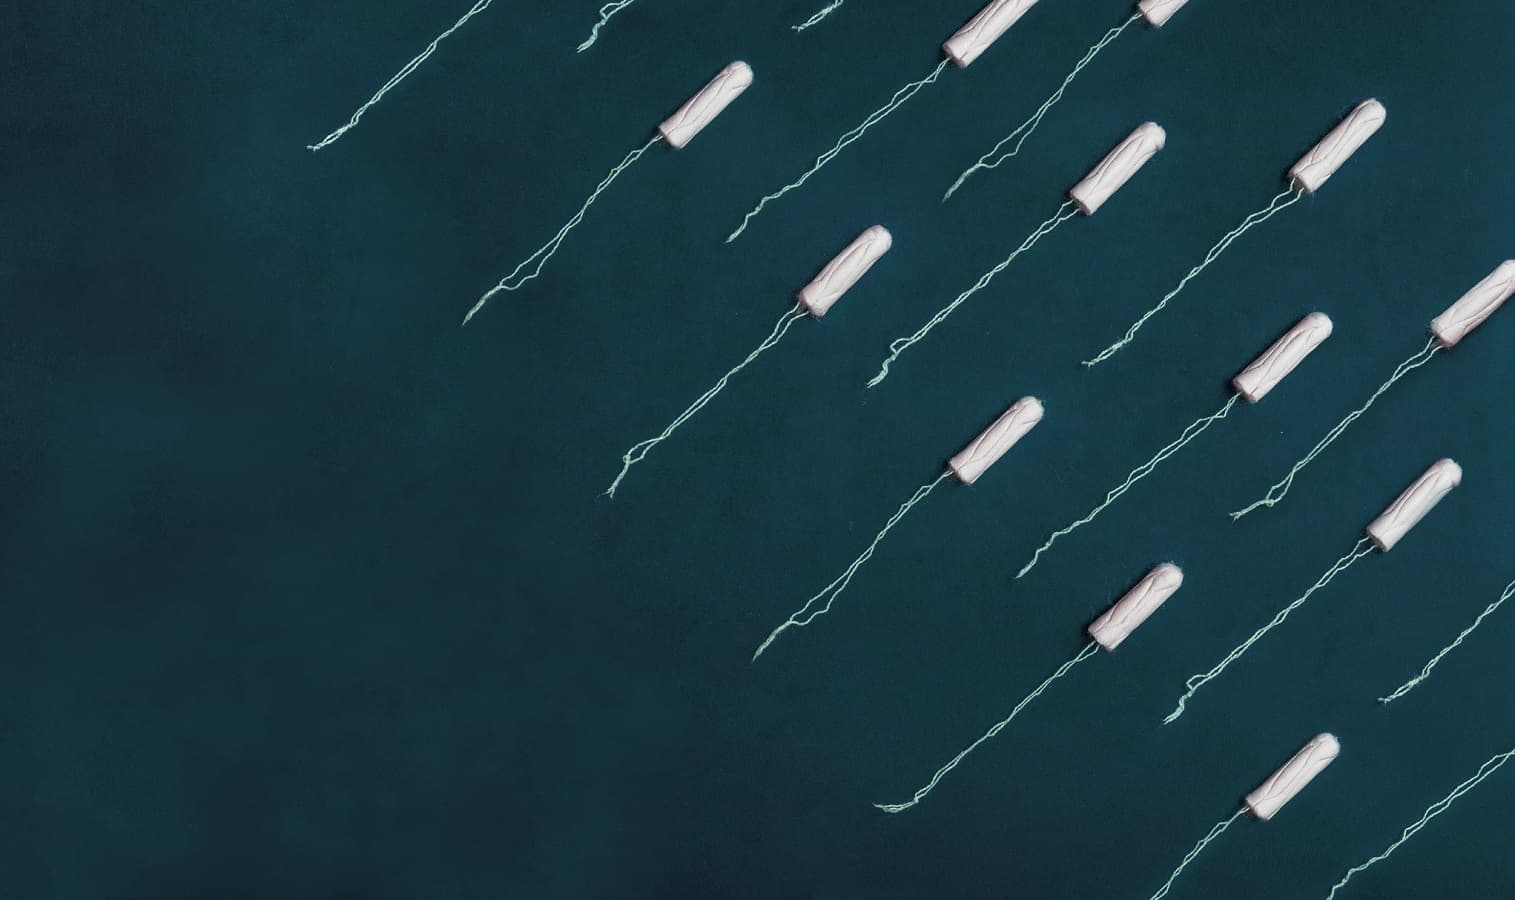 period tracking apps leaked sensitive data to face